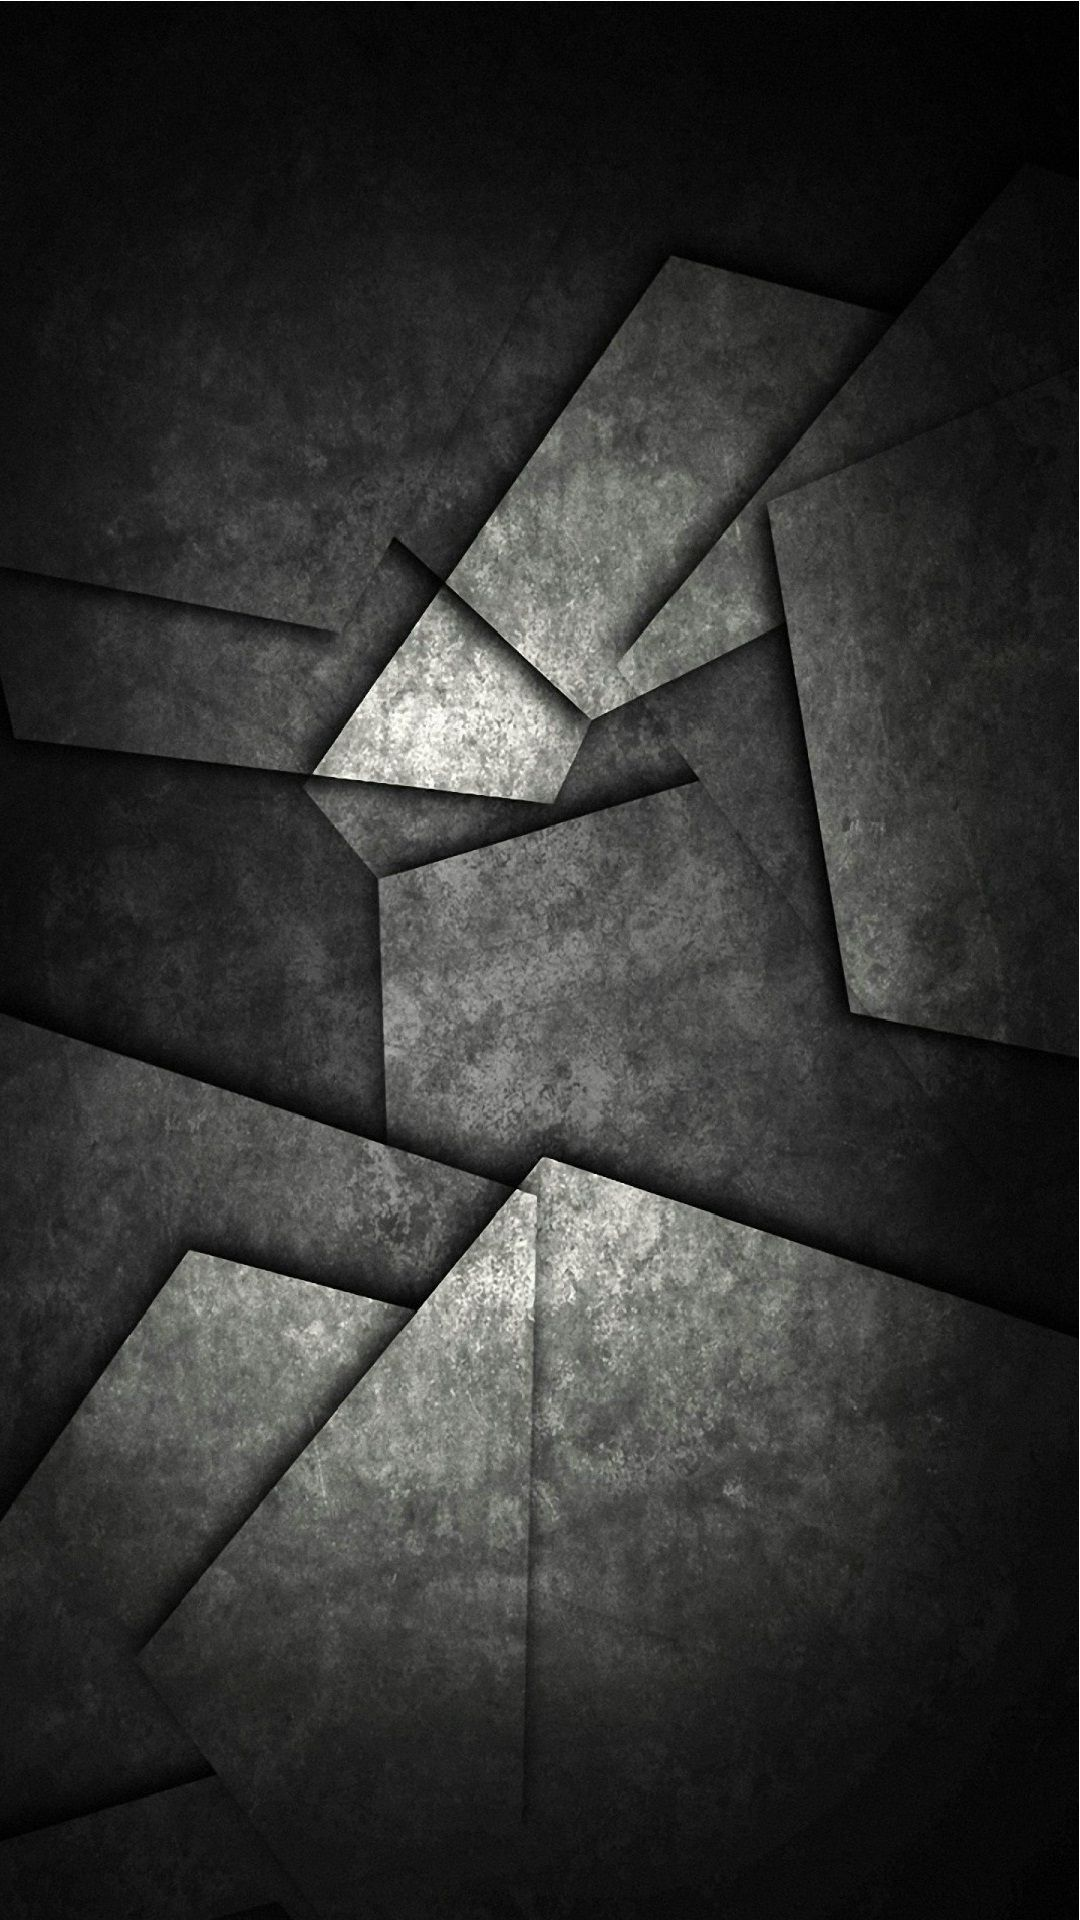 Phone Abstract Wallpaper Hd For Android